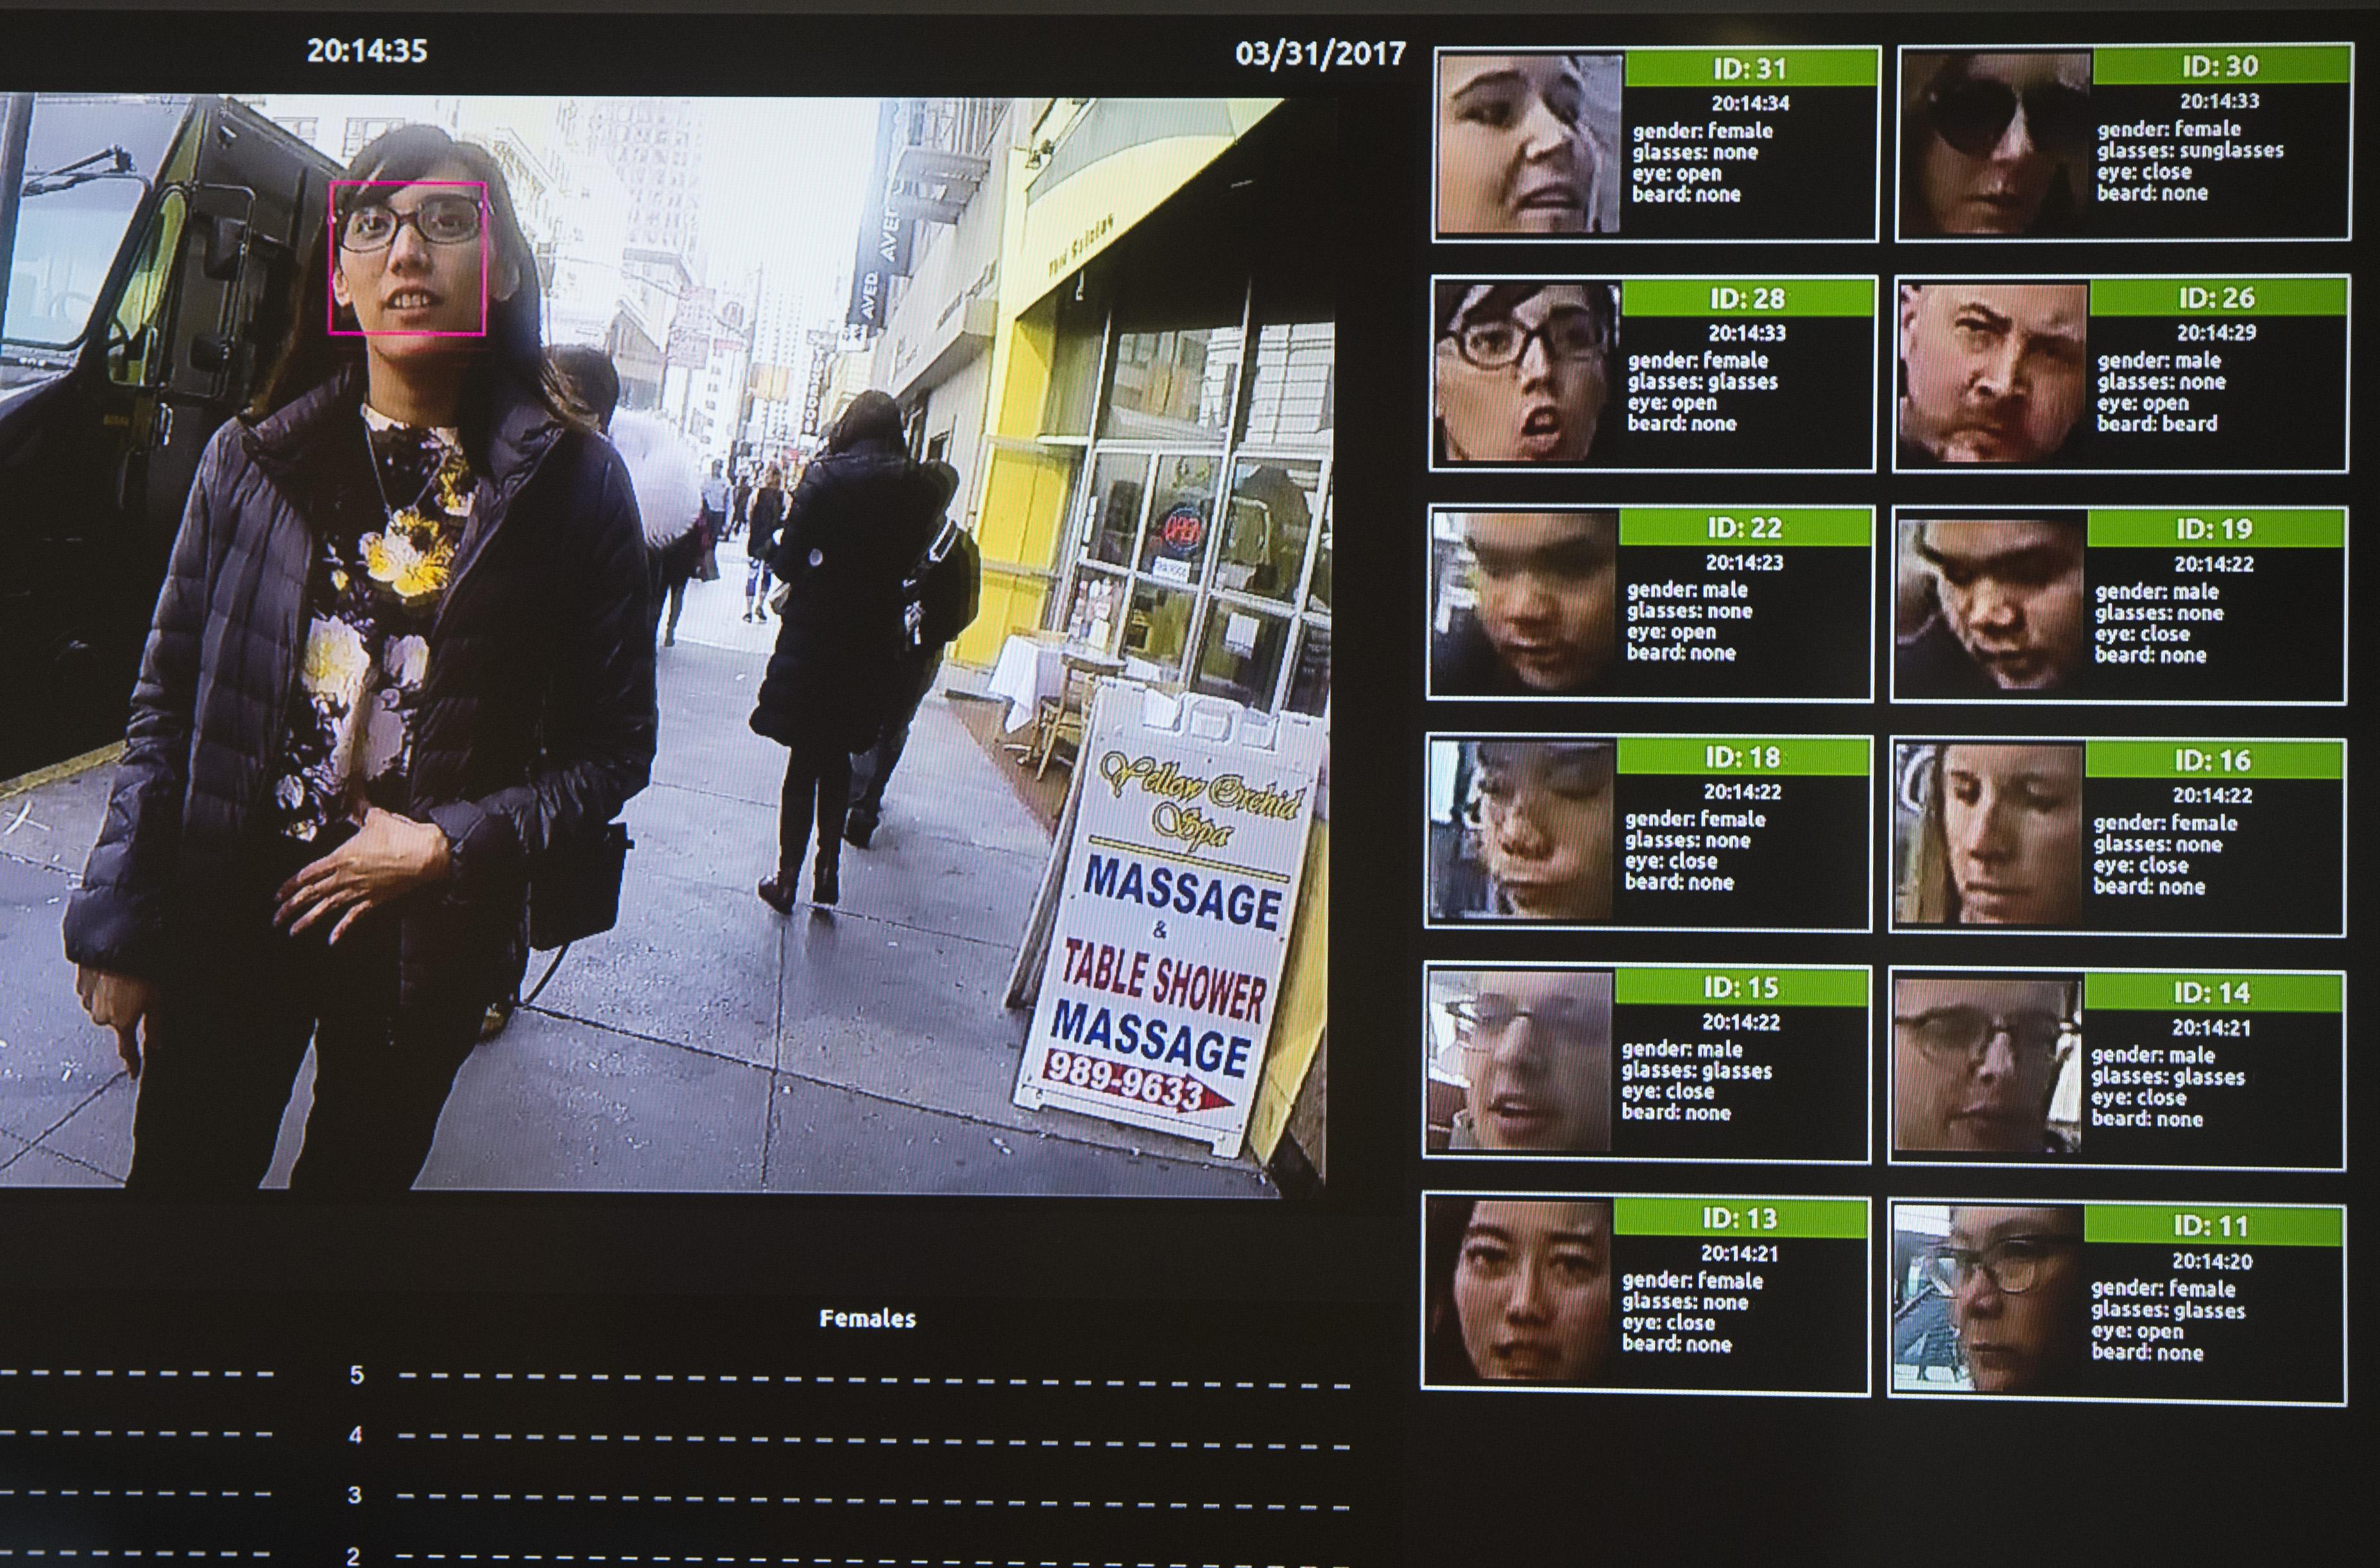 A facial recognition system for law enforcement on display during the NVIDIA GPU Technology Conference in 2017.